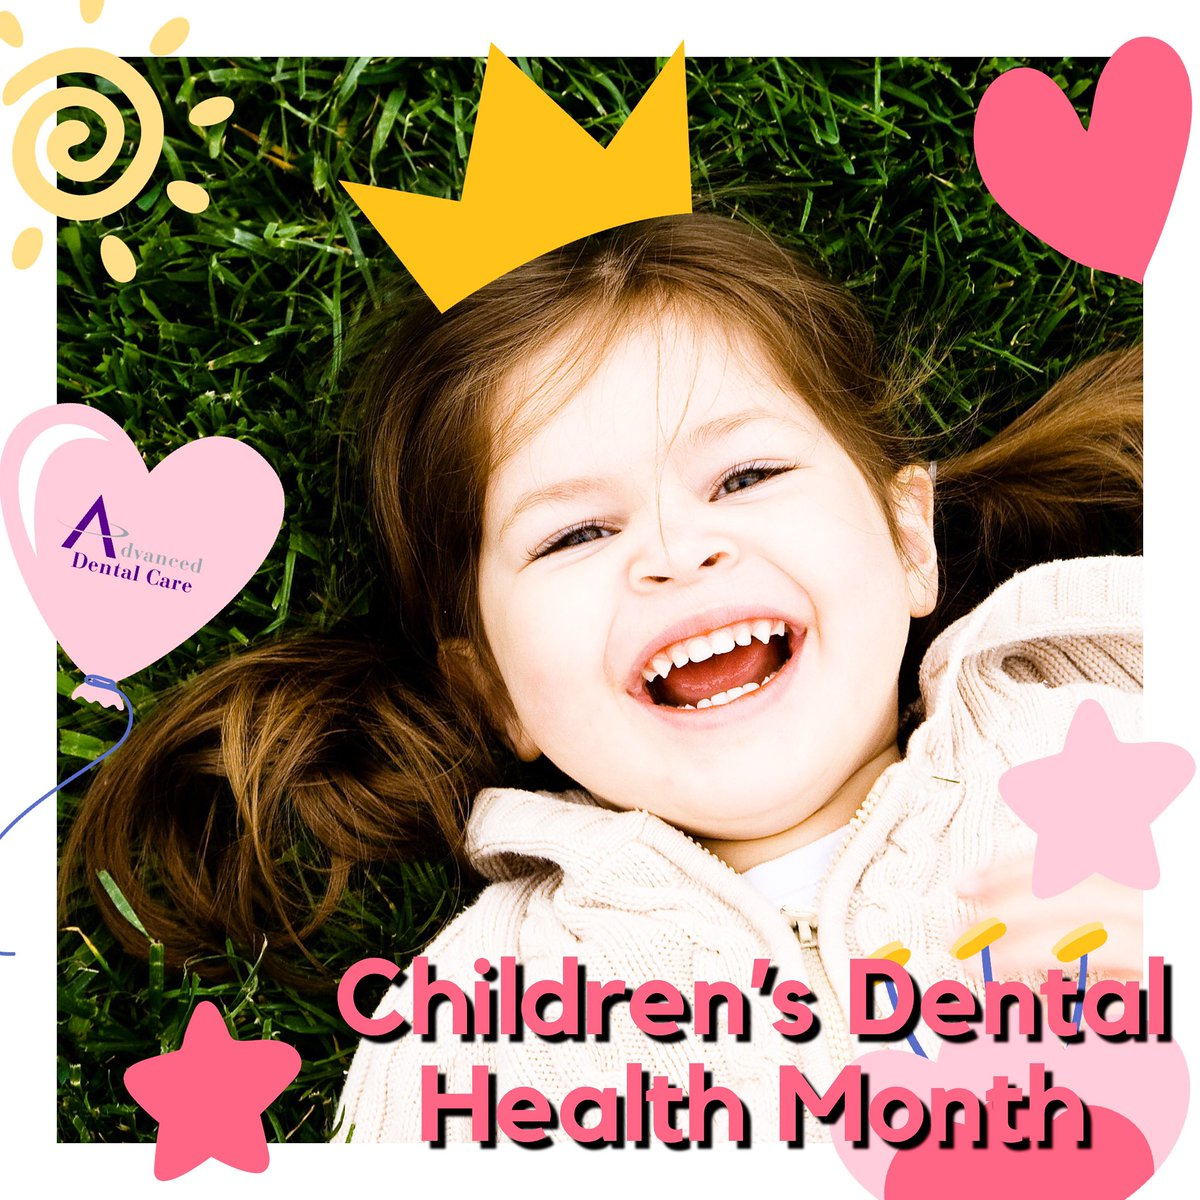 RT>@MyCostaMesaDDS: February is Children's Dental Health Month!  Check out this article from @Cigna for Ten Tips to keep your kid's #smile healthy! 😁  http://www.cigna.com/healthwellness/children-dental-tips…  #kids #dentistry #health #tips